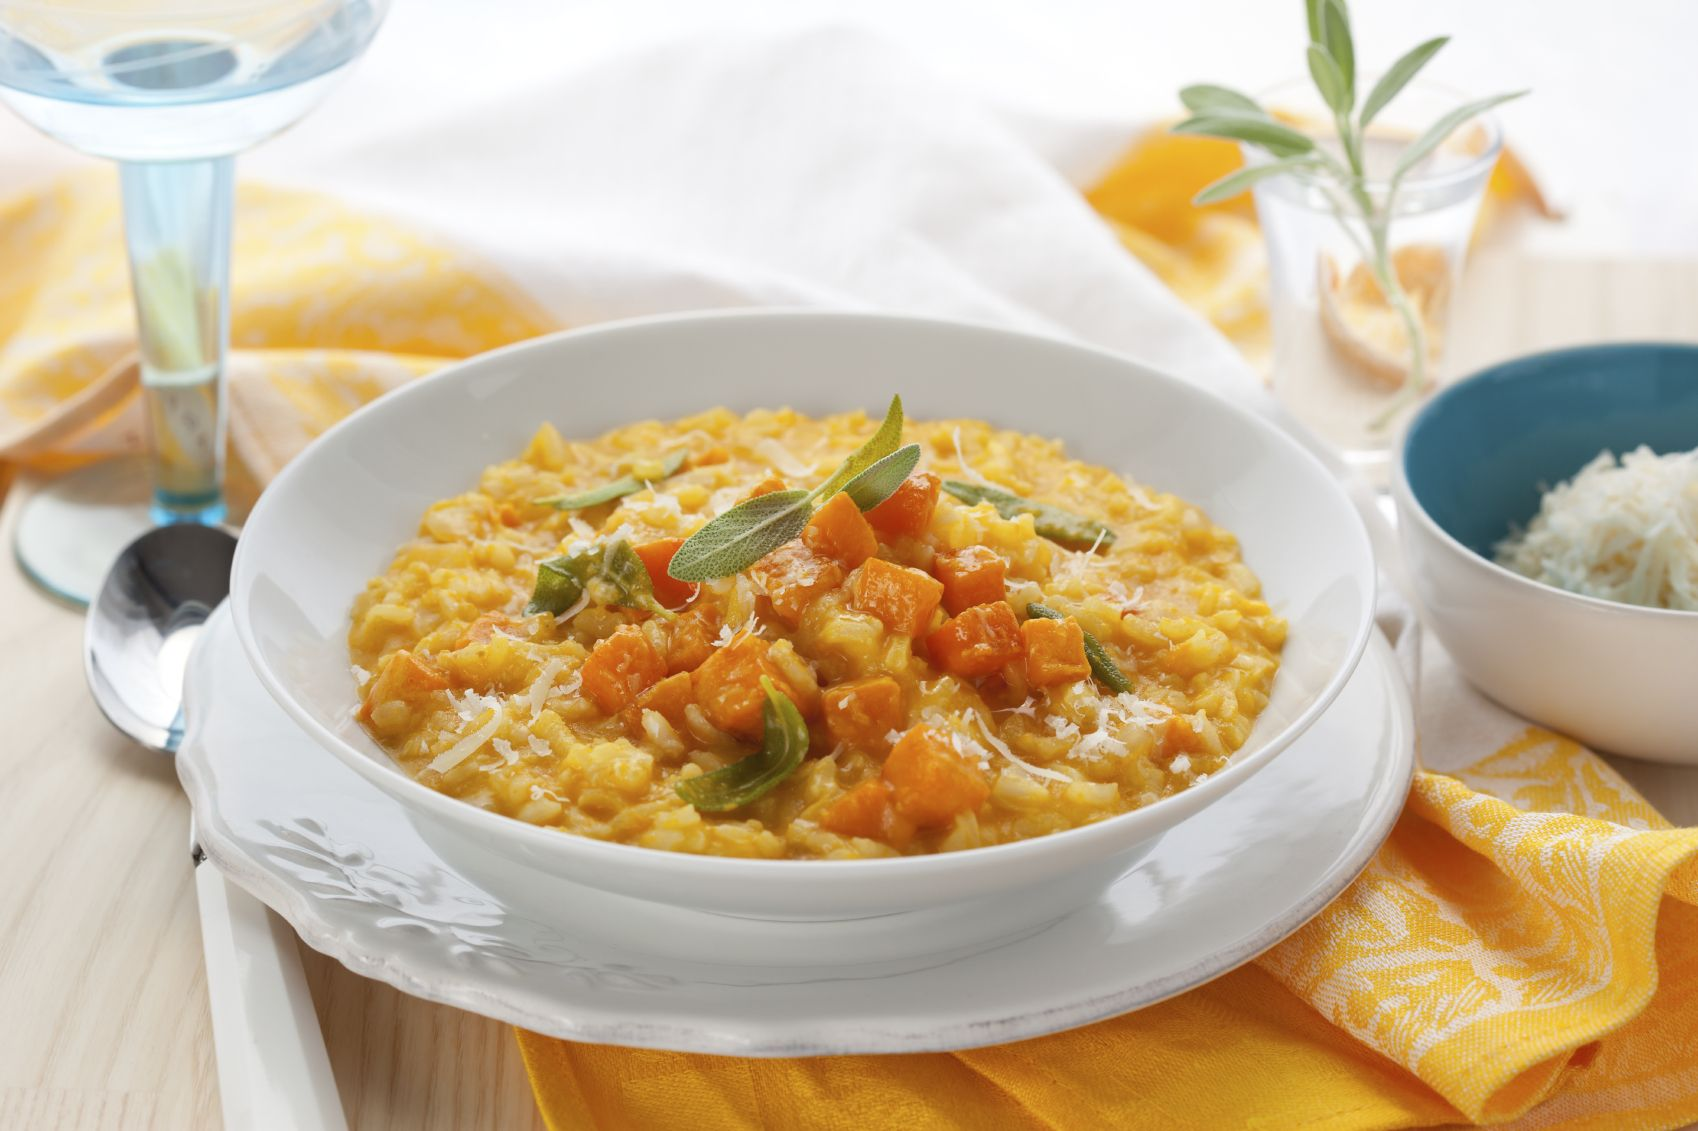 Cucina Antica Sauce Pumpkin Risotto Made With Cucina Antica Tuscany Pumpkin Sauce